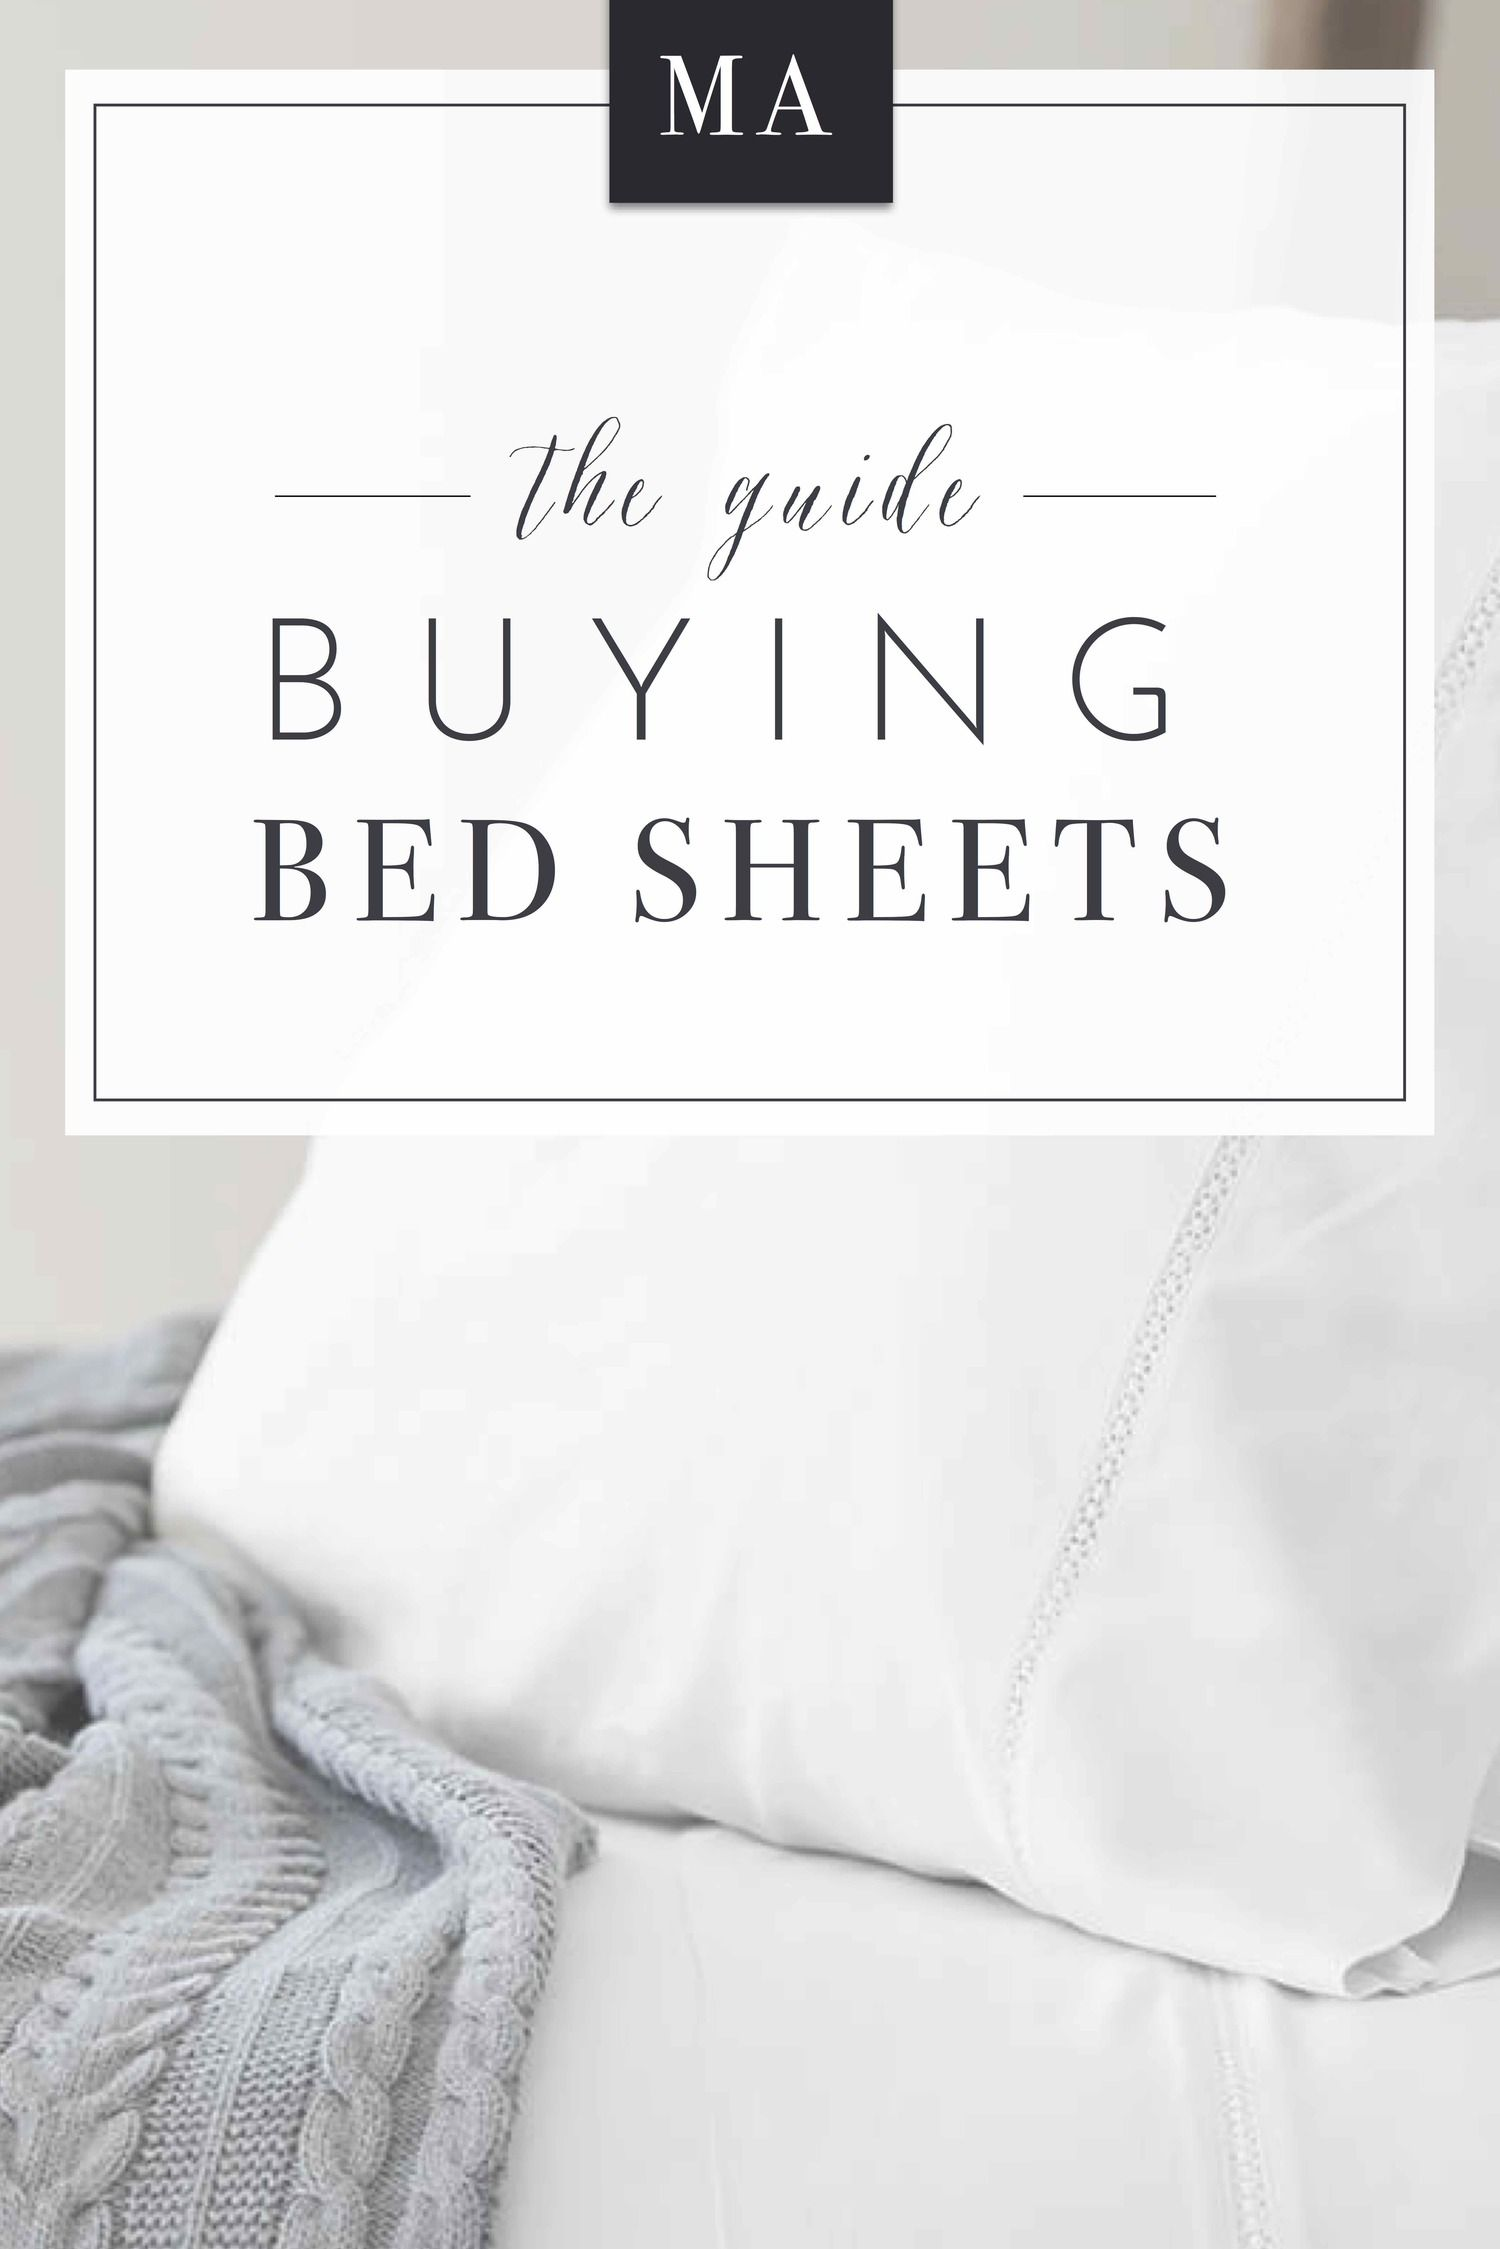 The Guide To Ing Bed Sheets What Look For Scoop On Thread Count And My Favorite Non Toxic Pick